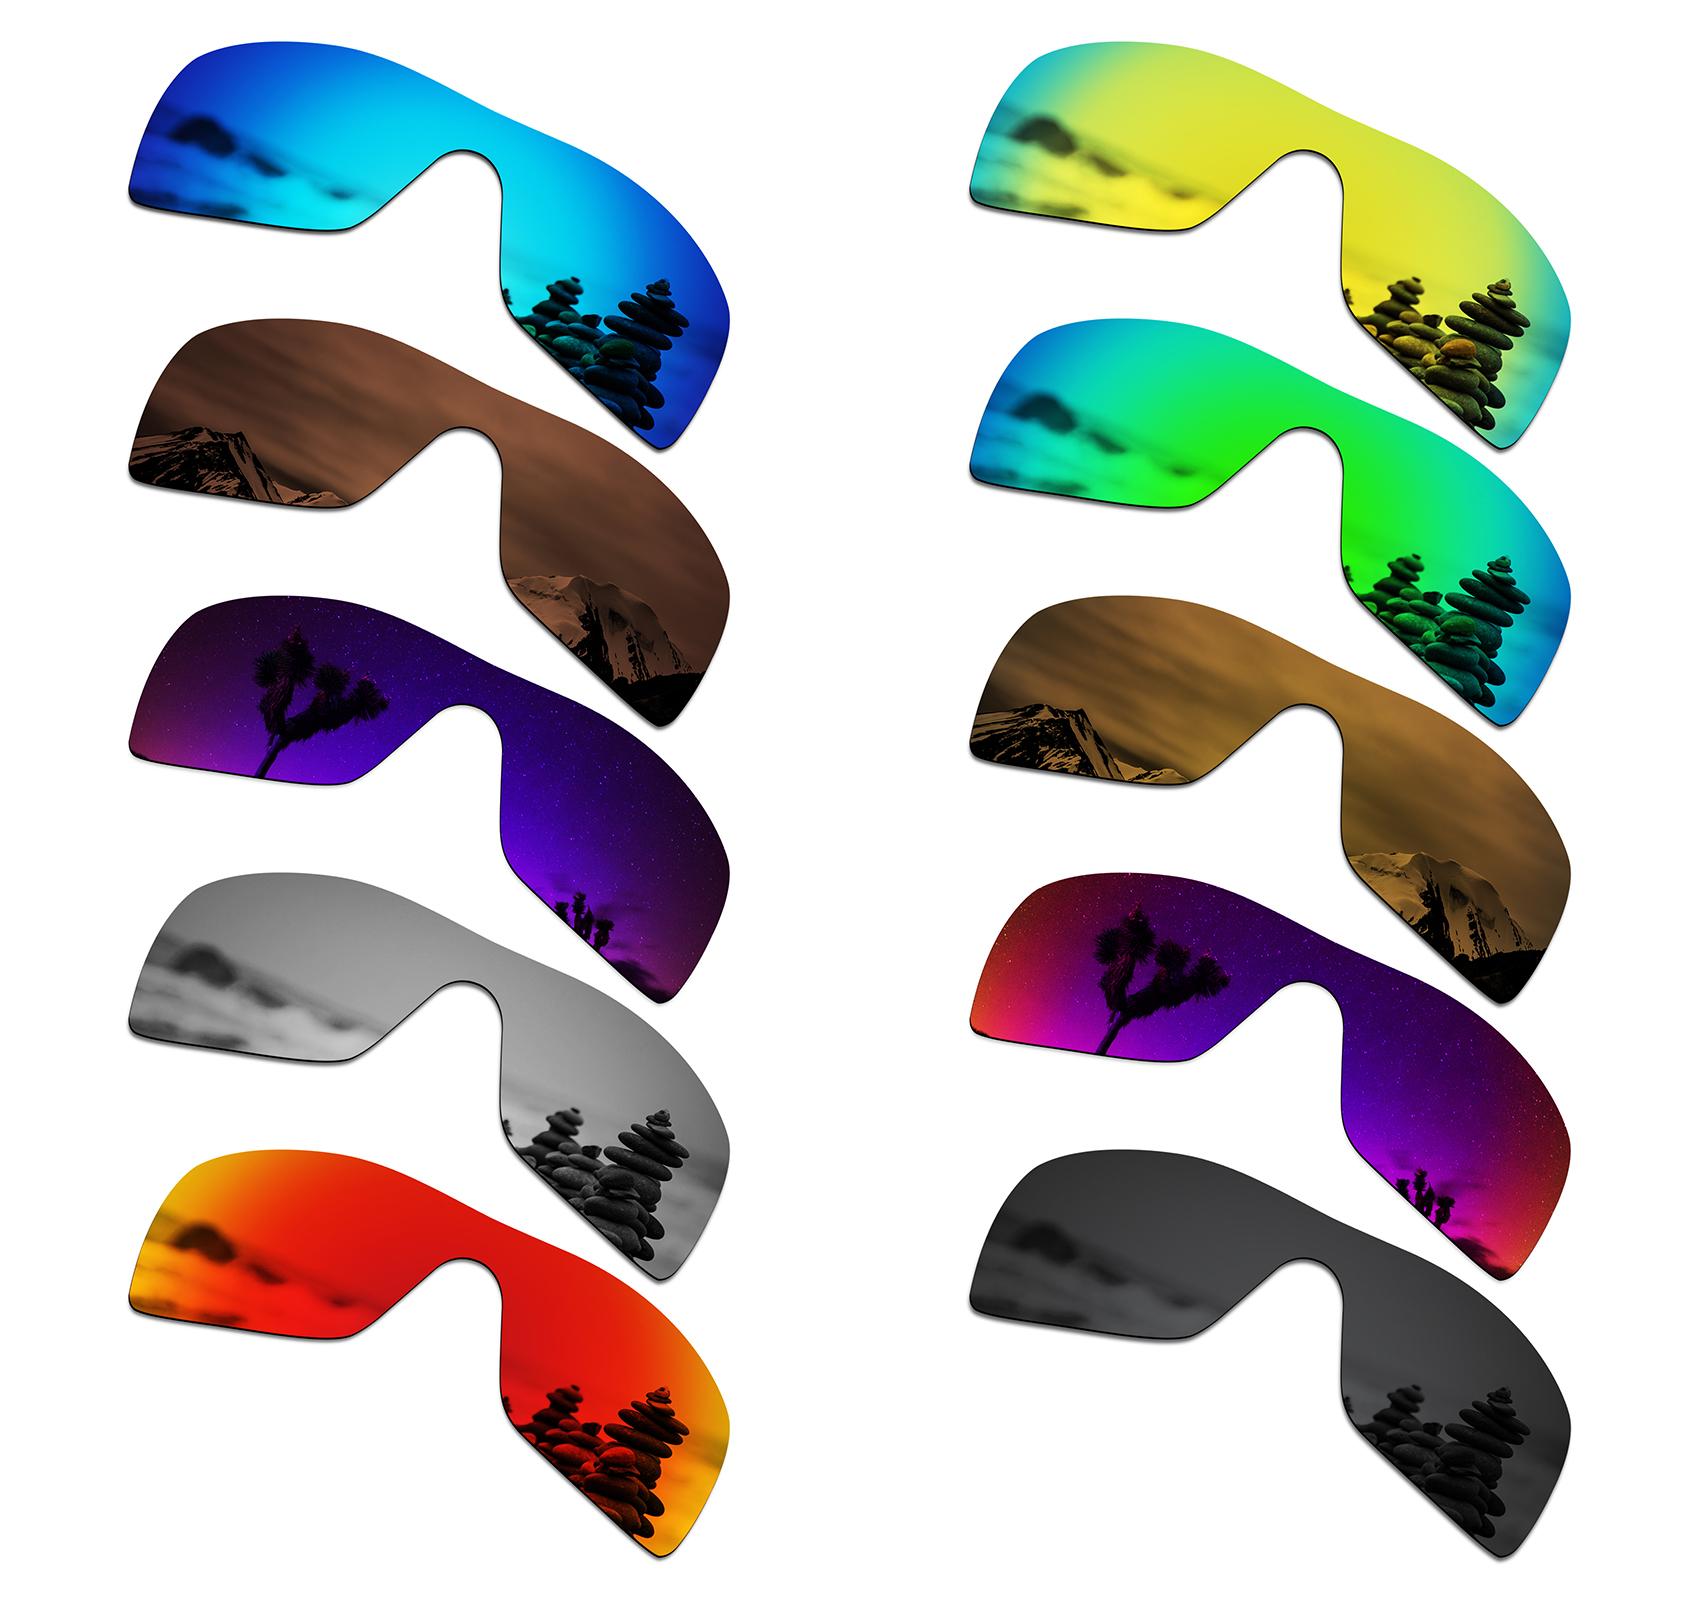 SmartVLT Polarized Replacement Lenses For Oakley Batwolf Sunglasses - Multiple Options